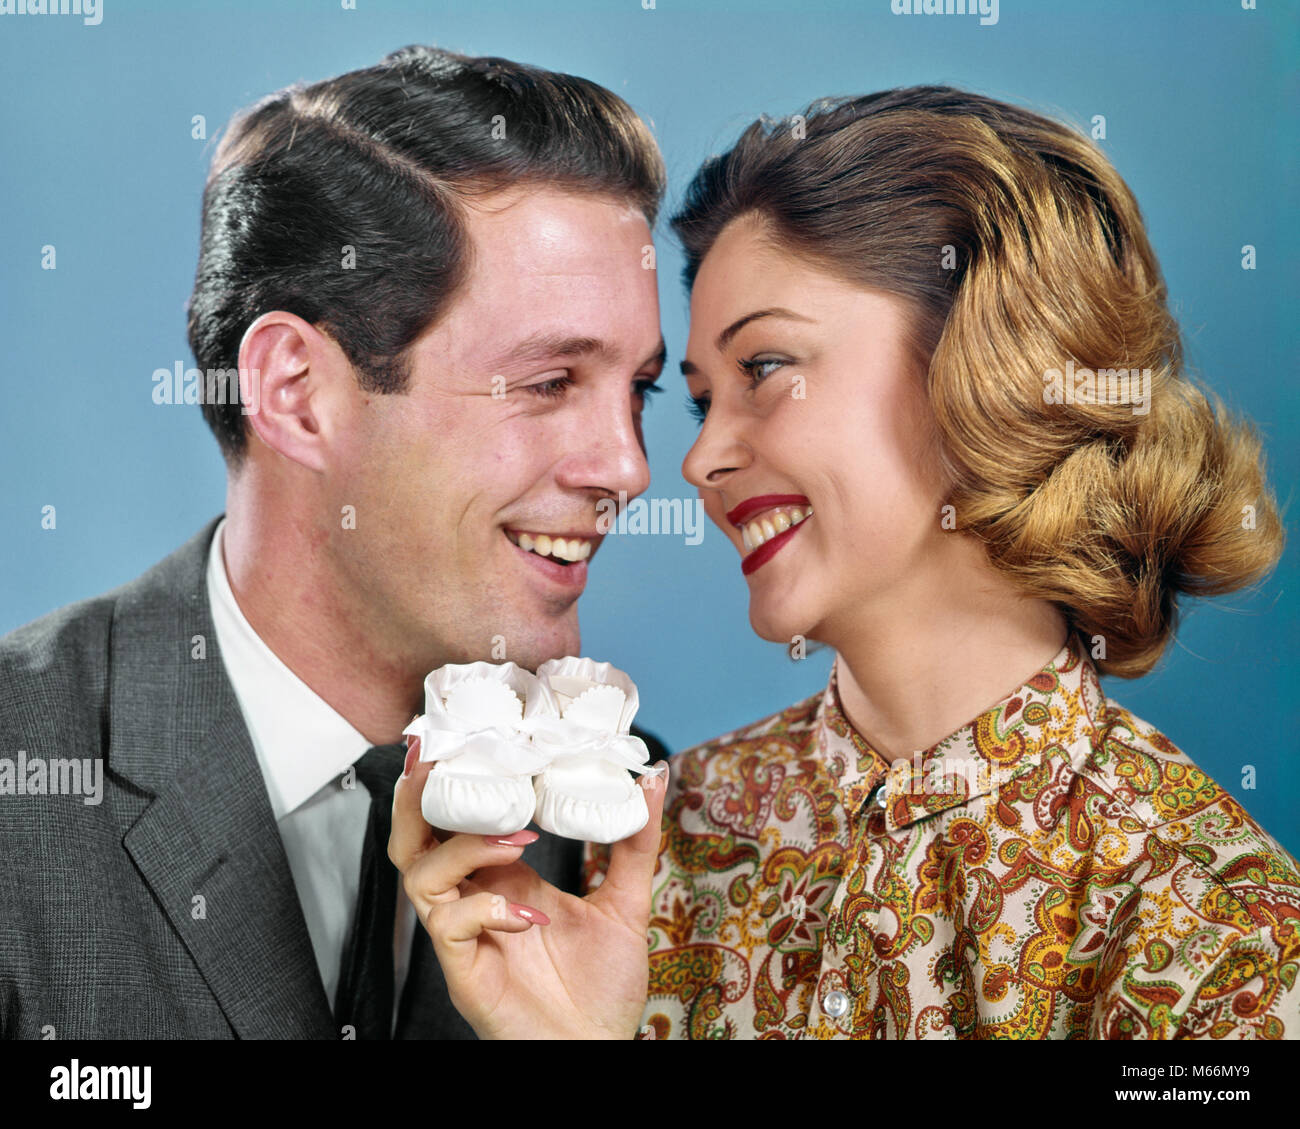 1960s SMILING COUPLE HEADS TOGETHER OVER PAIR BABY BOOTIES - kp669 HAR001 HARS CELEBRATION FEMALES HEADS STUDIO - Stock Image